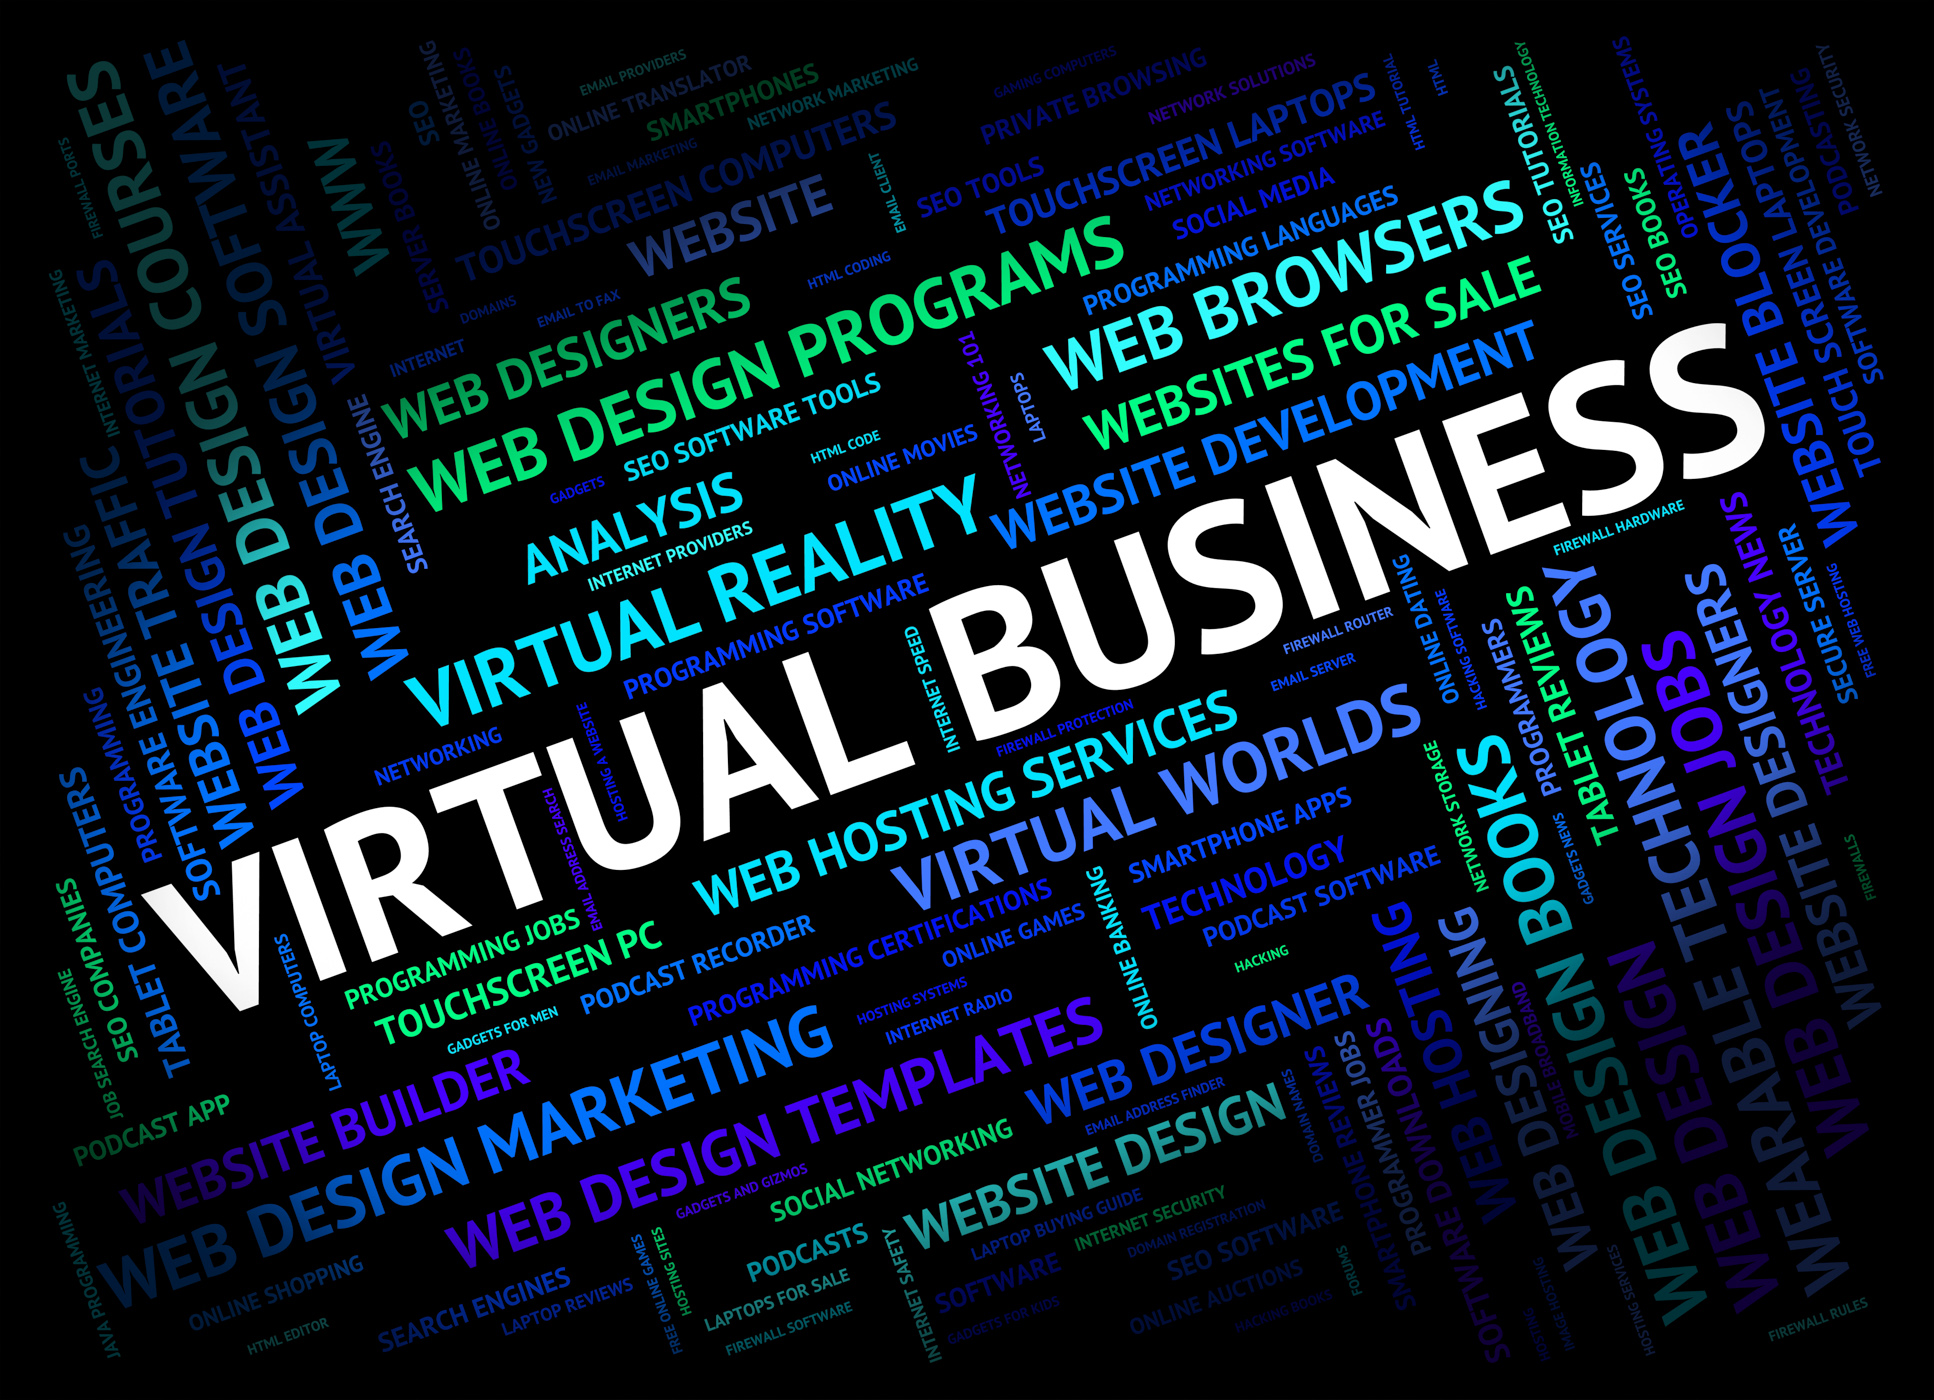 Virtual business shows contract out and businesses photo